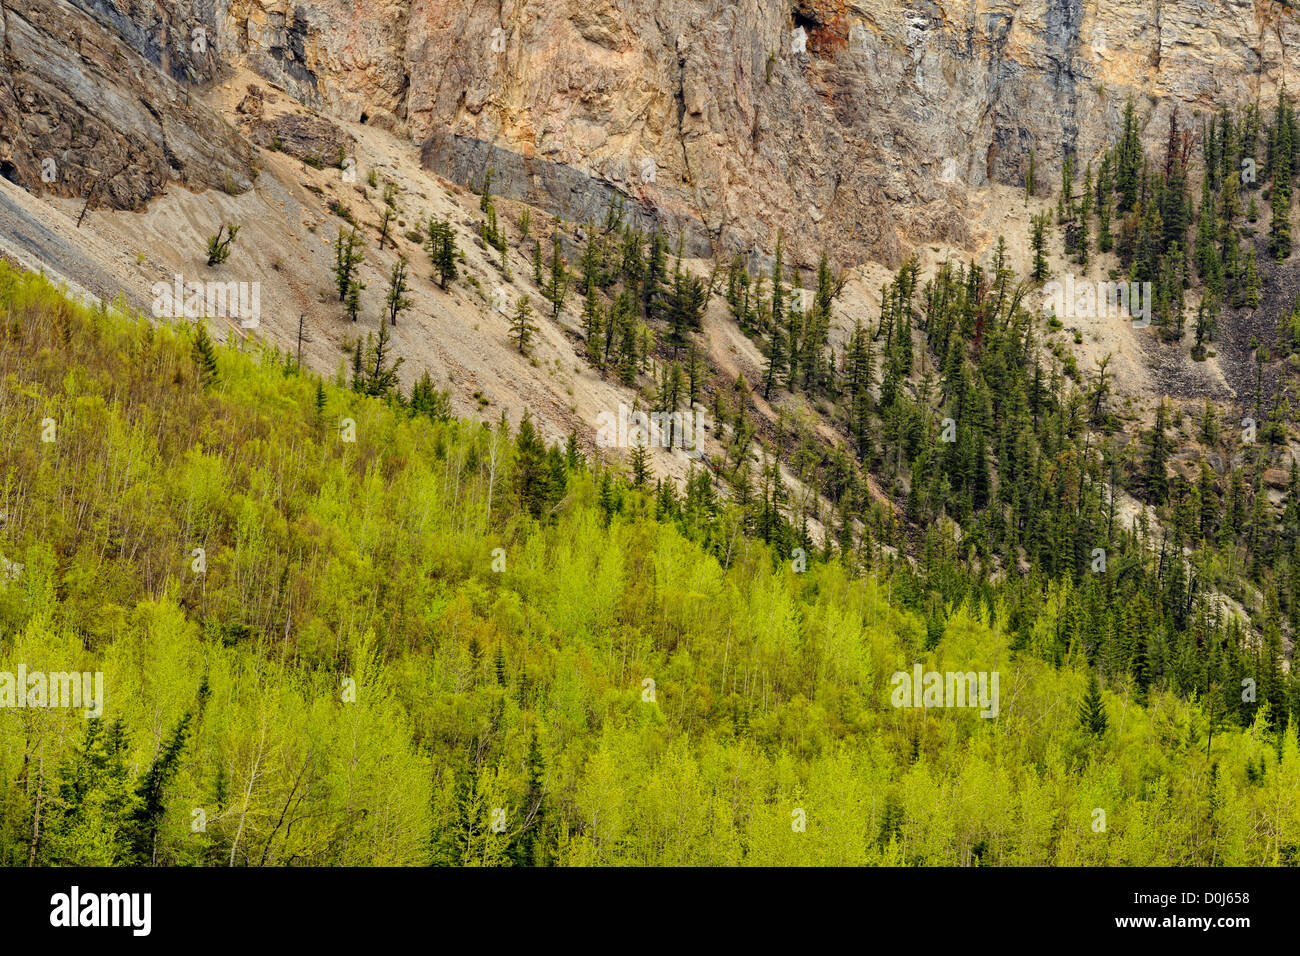 Aspens leafing out on the slopes near Kicking Horse Pass, Yoho NP, BC, Canada - Stock Image